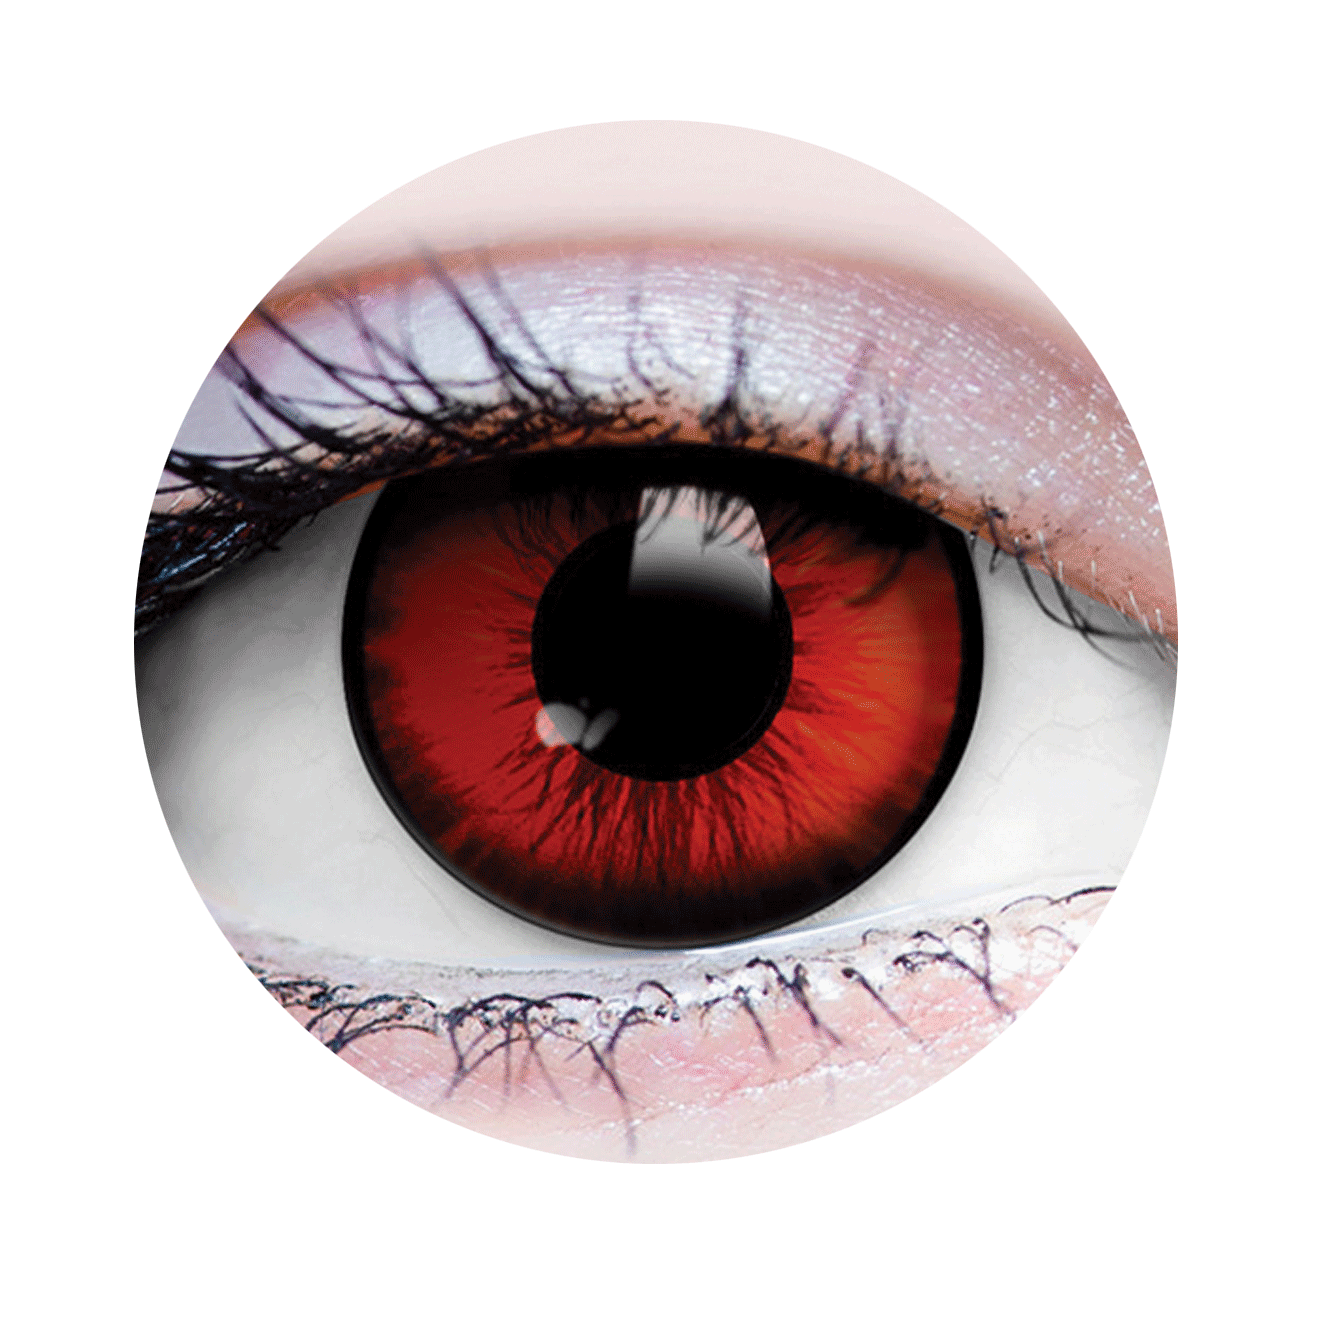 Dracula_1 Halloween Costume Contact Lens-Close Up